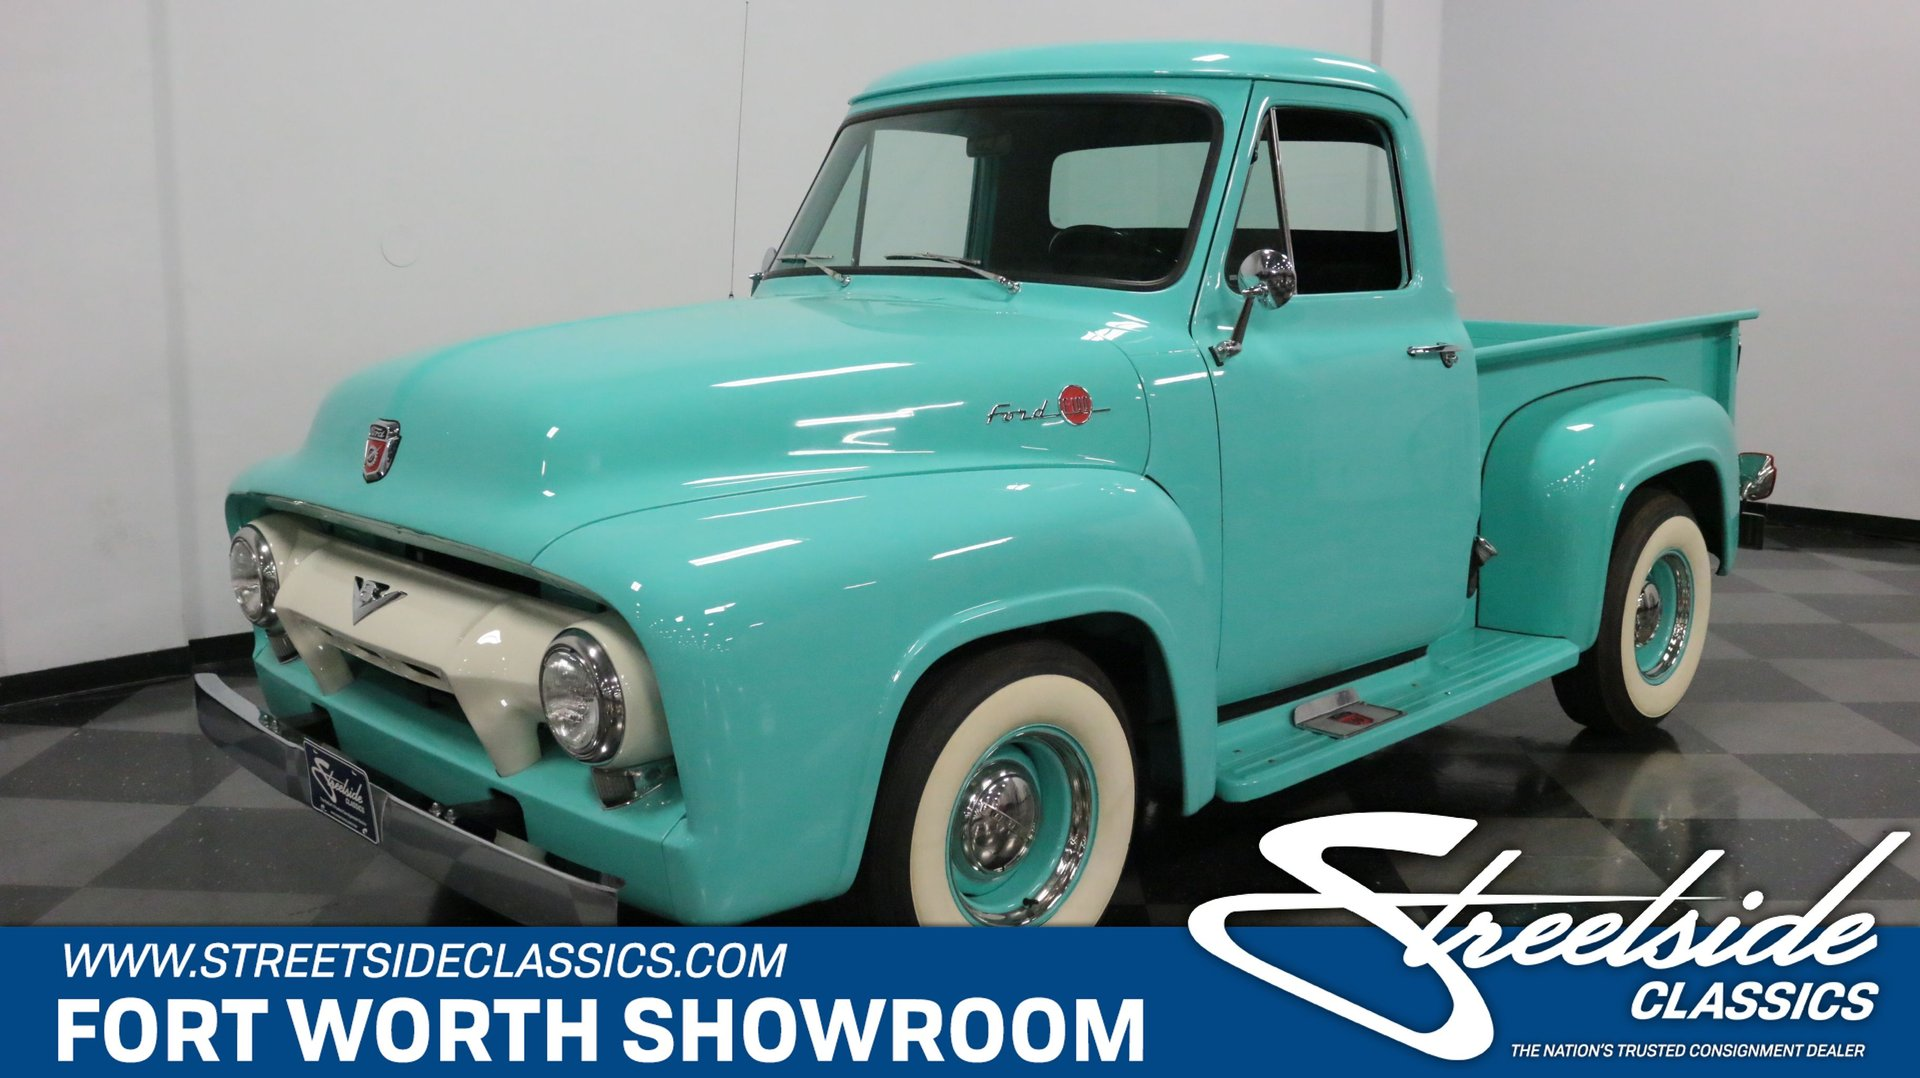 1954 Ford F 100 Classic Cars For Sale Streetside Classics The Nation S 1 Consignment Dealer